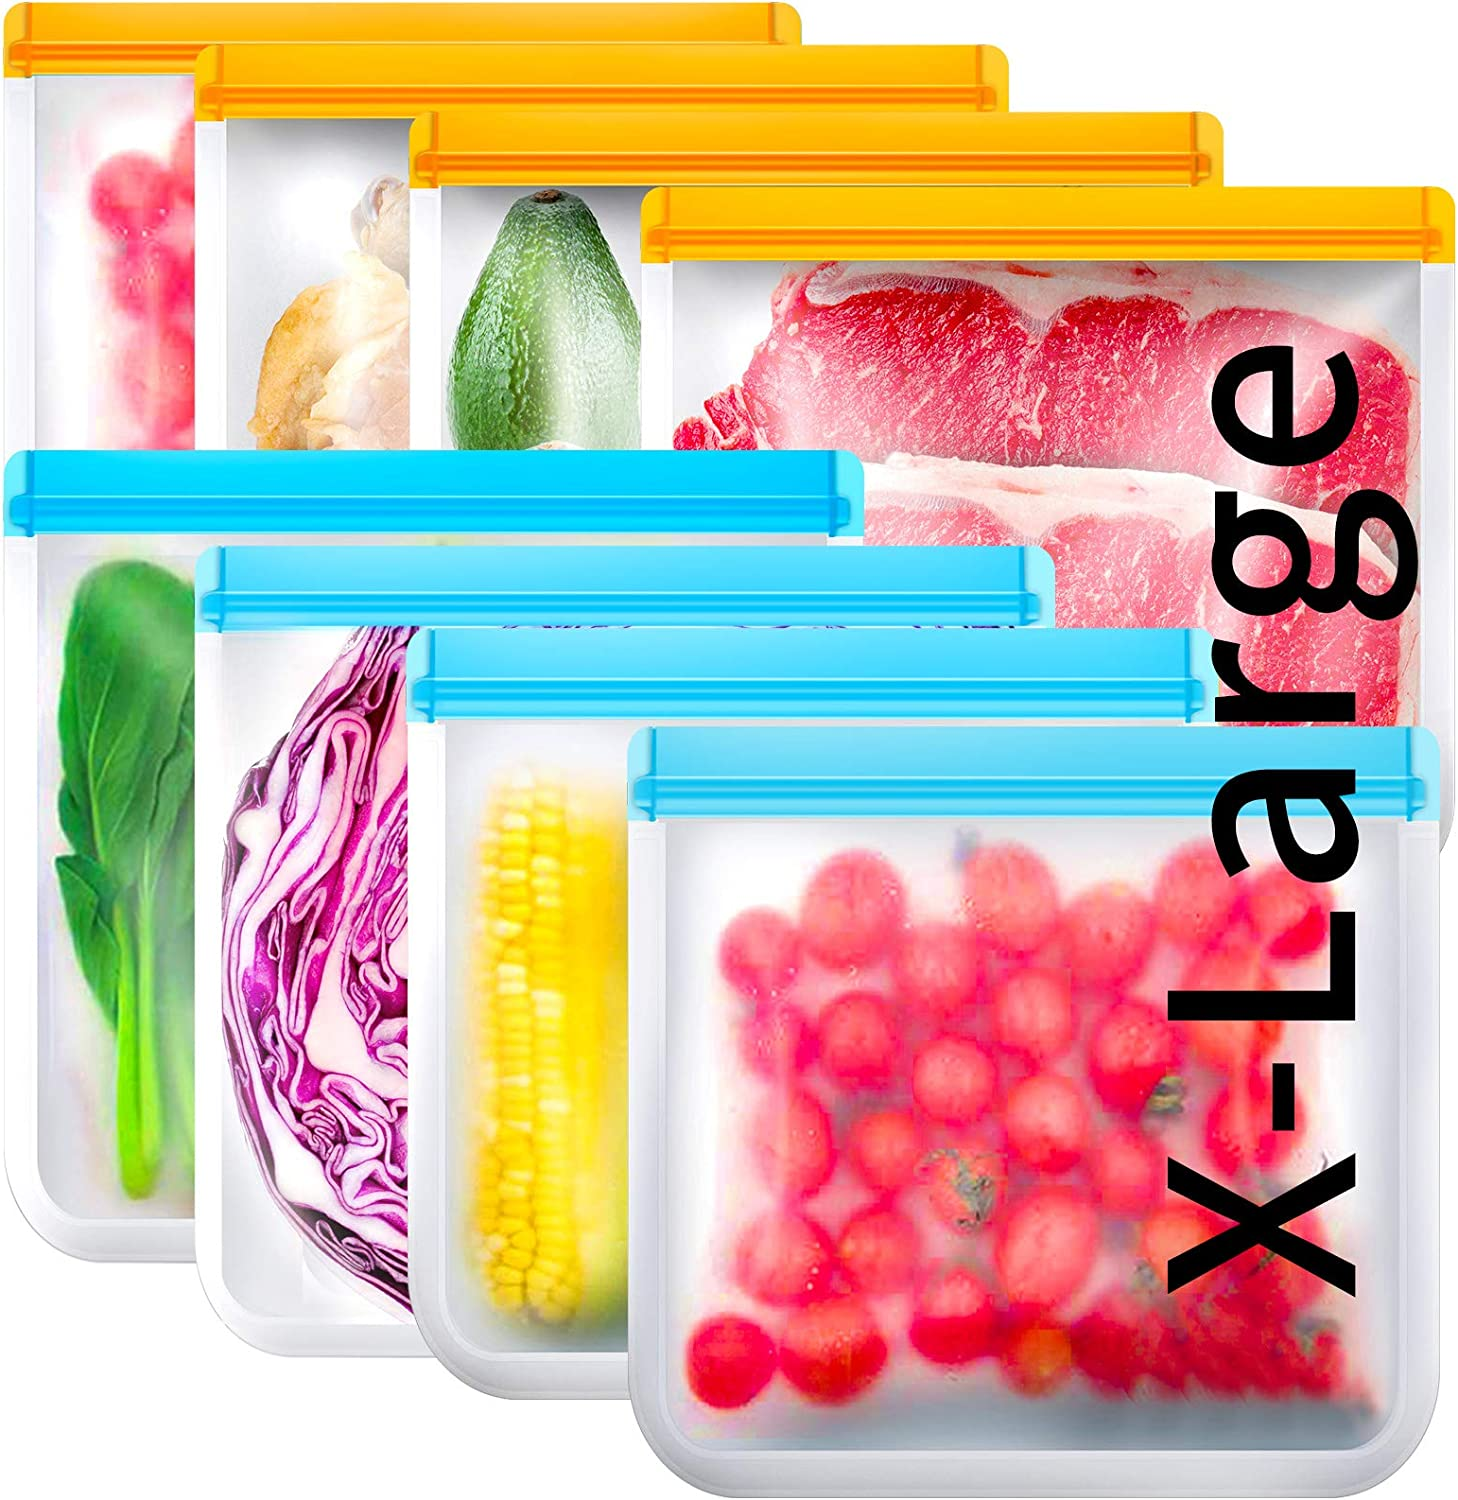 Reusable Gallon Freezer Bags 8 Pack, Silicone Food Storage Bags BPA Free, Reusable Food Storage Bags for Lunch, Meat, Frozen Chicken Breast, Fruit, Vegetables